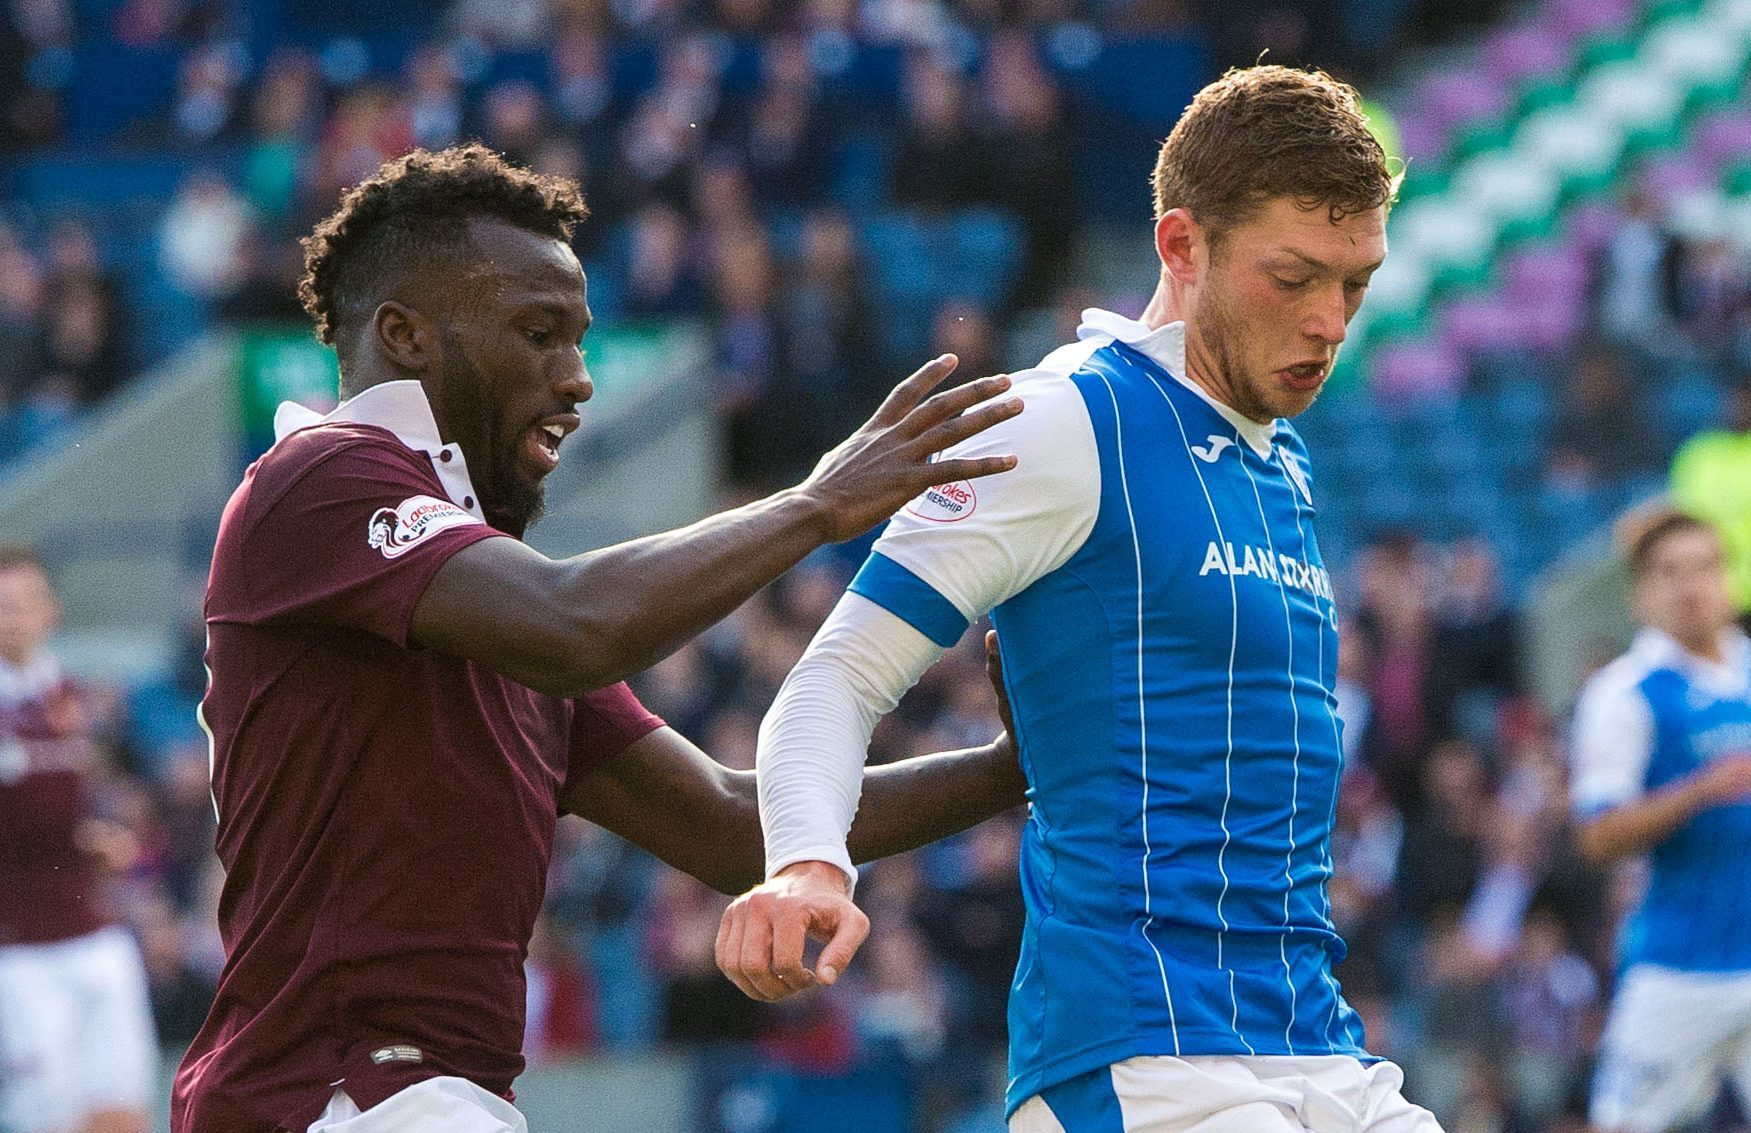 Liam Gordon in action against Hearts.